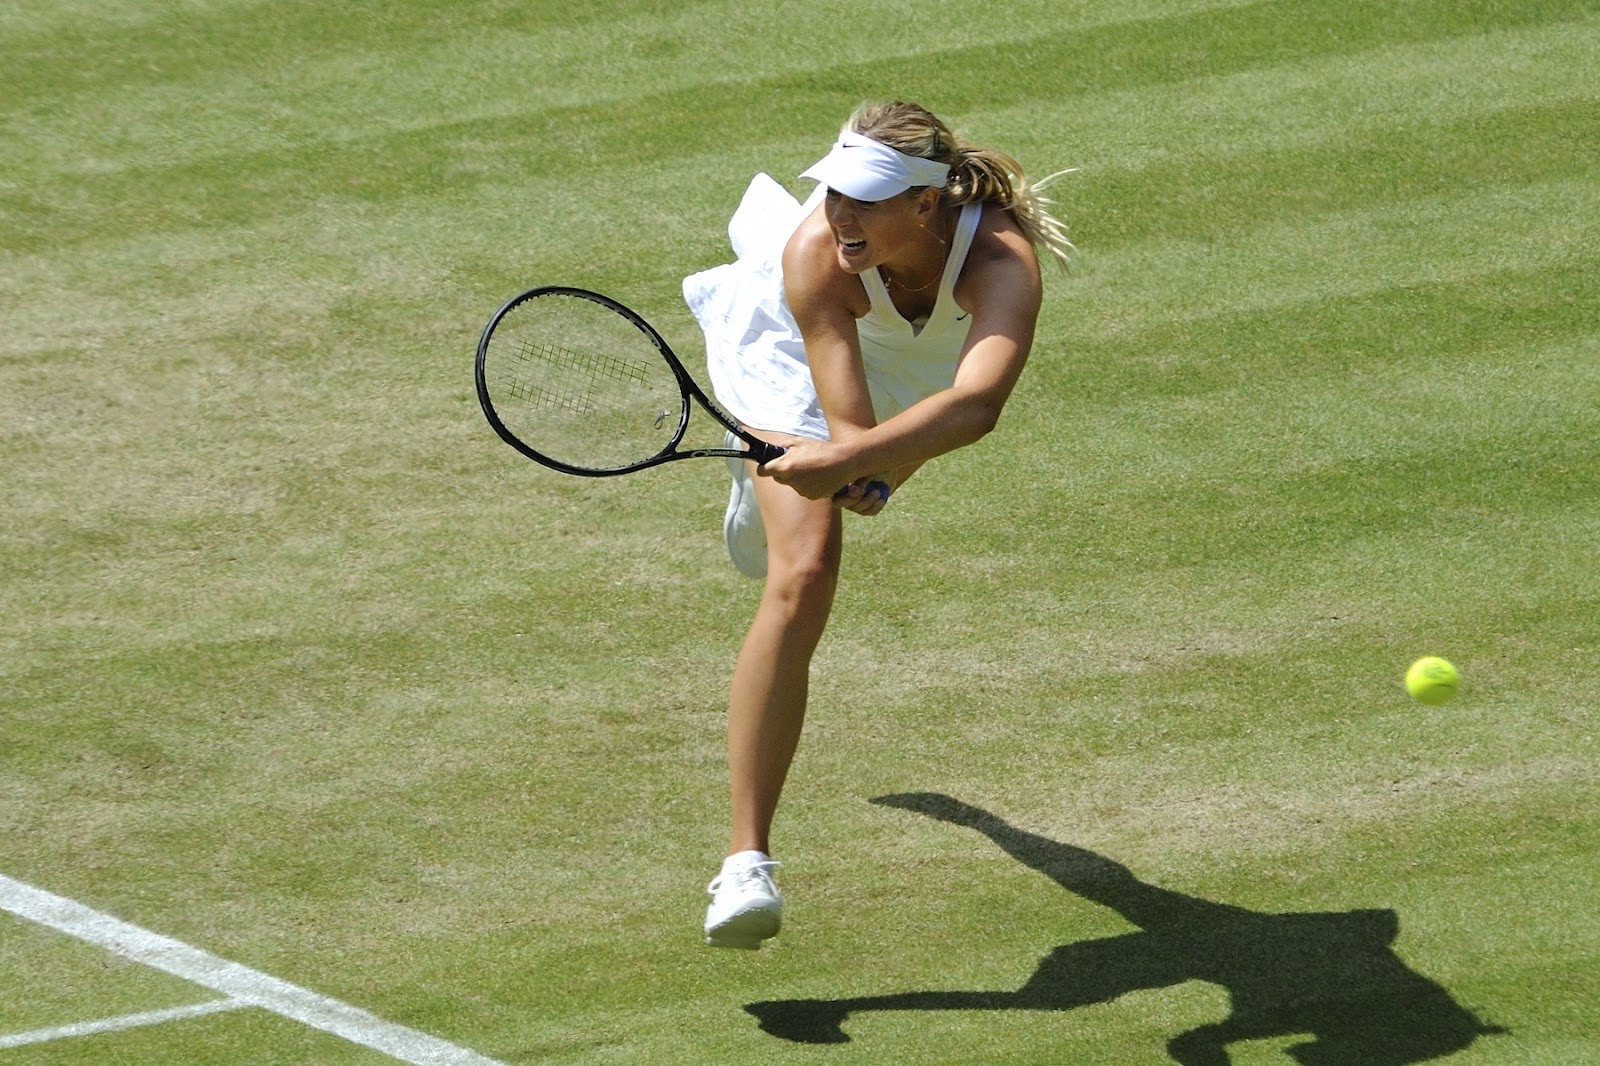 http://3.bp.blogspot.com/-_qOc9O4_KhU/UBWMUt9zPWI/AAAAAAAACsA/jmob0qGWcGM/s1600/Maria+Sharapova+Playing+Tennis+-+Great+shots+(8).jpg